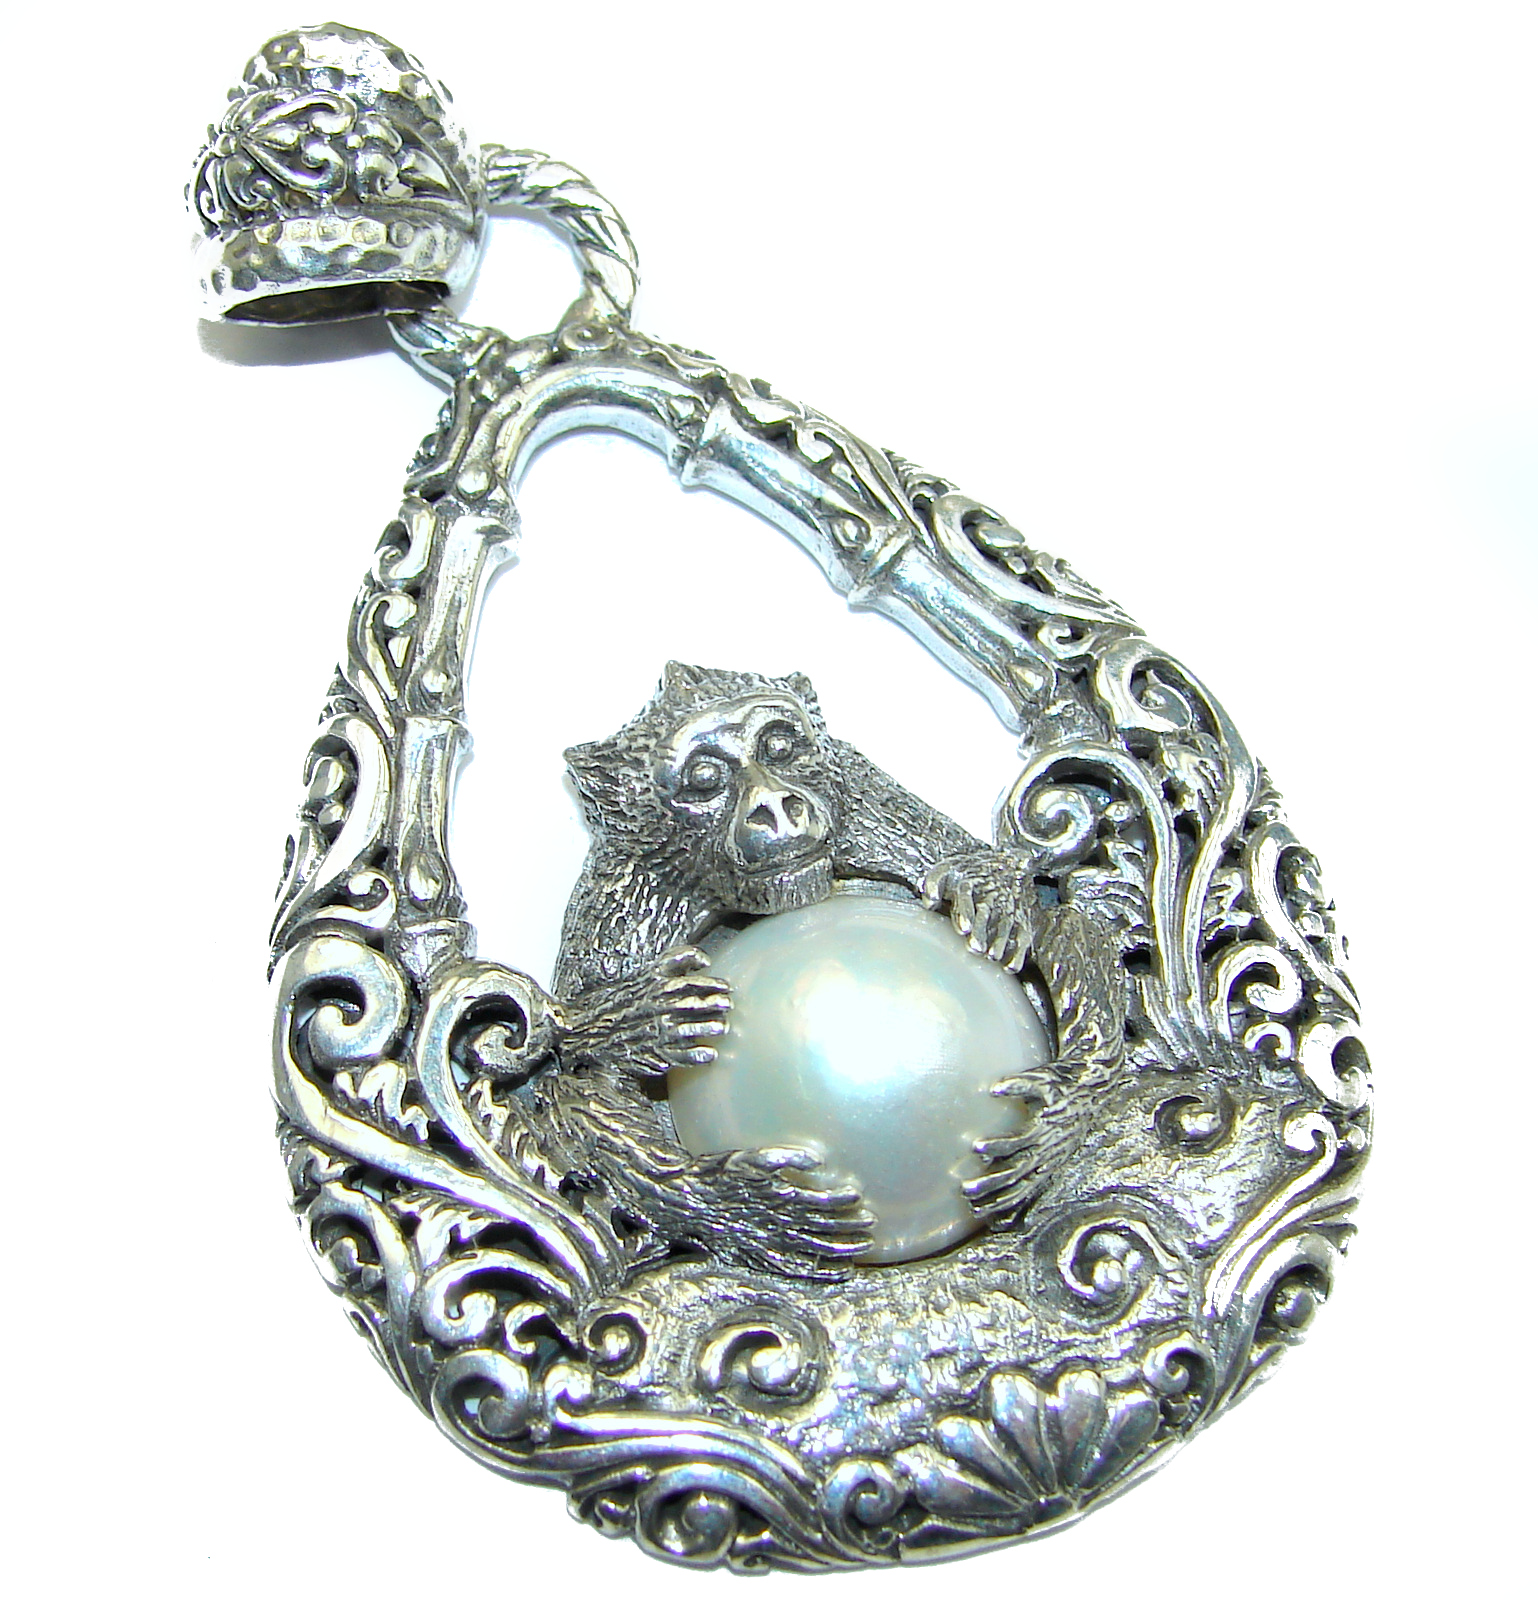 Prosperity and Fortune Monkey holding a white Pearl .925 Sterling Silver pendant